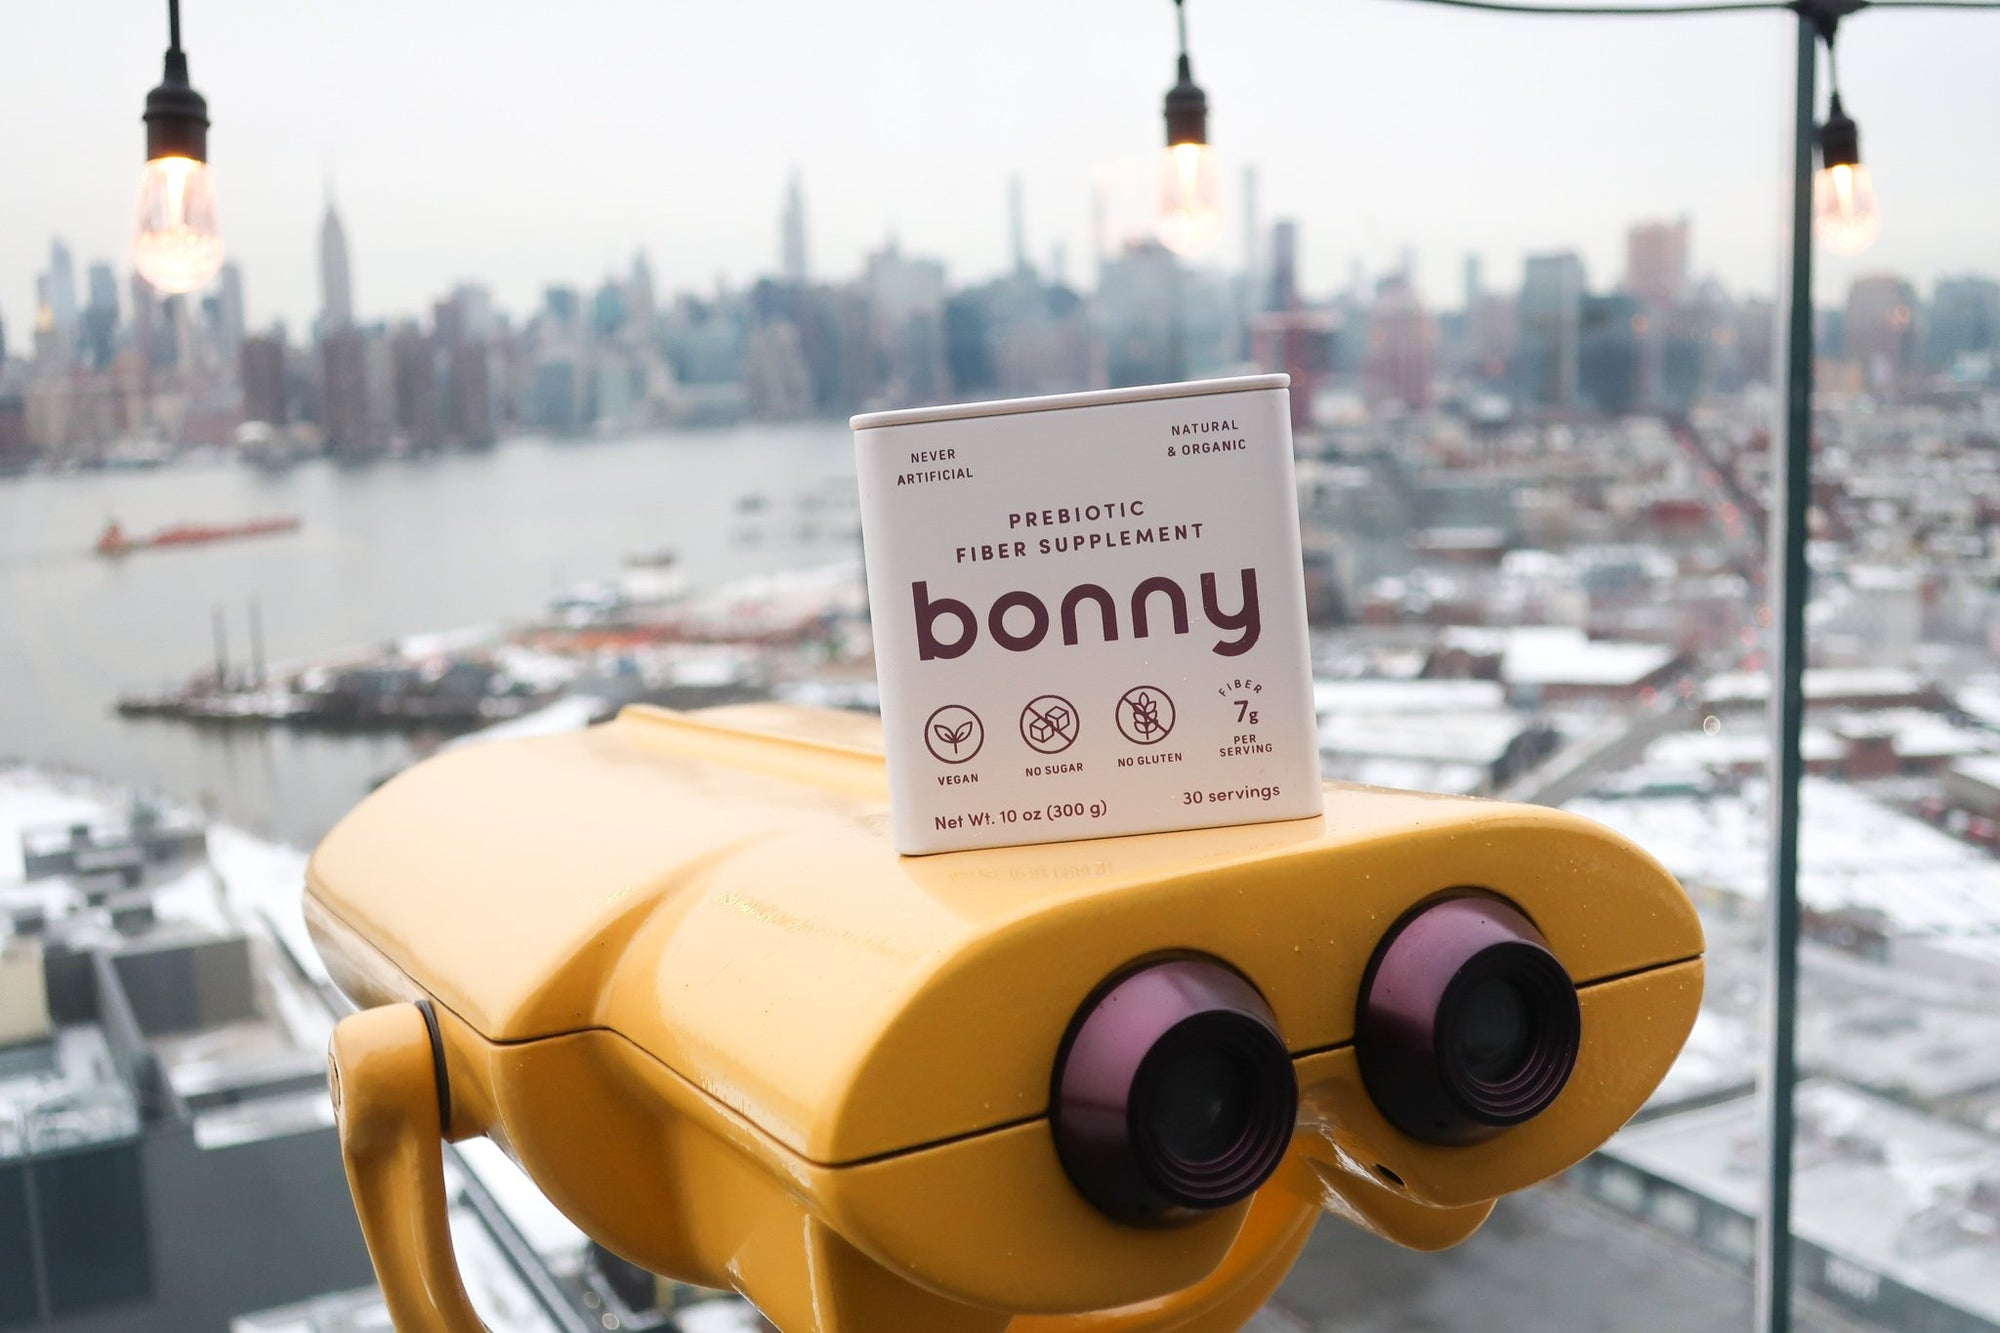 Bonny tin with city background